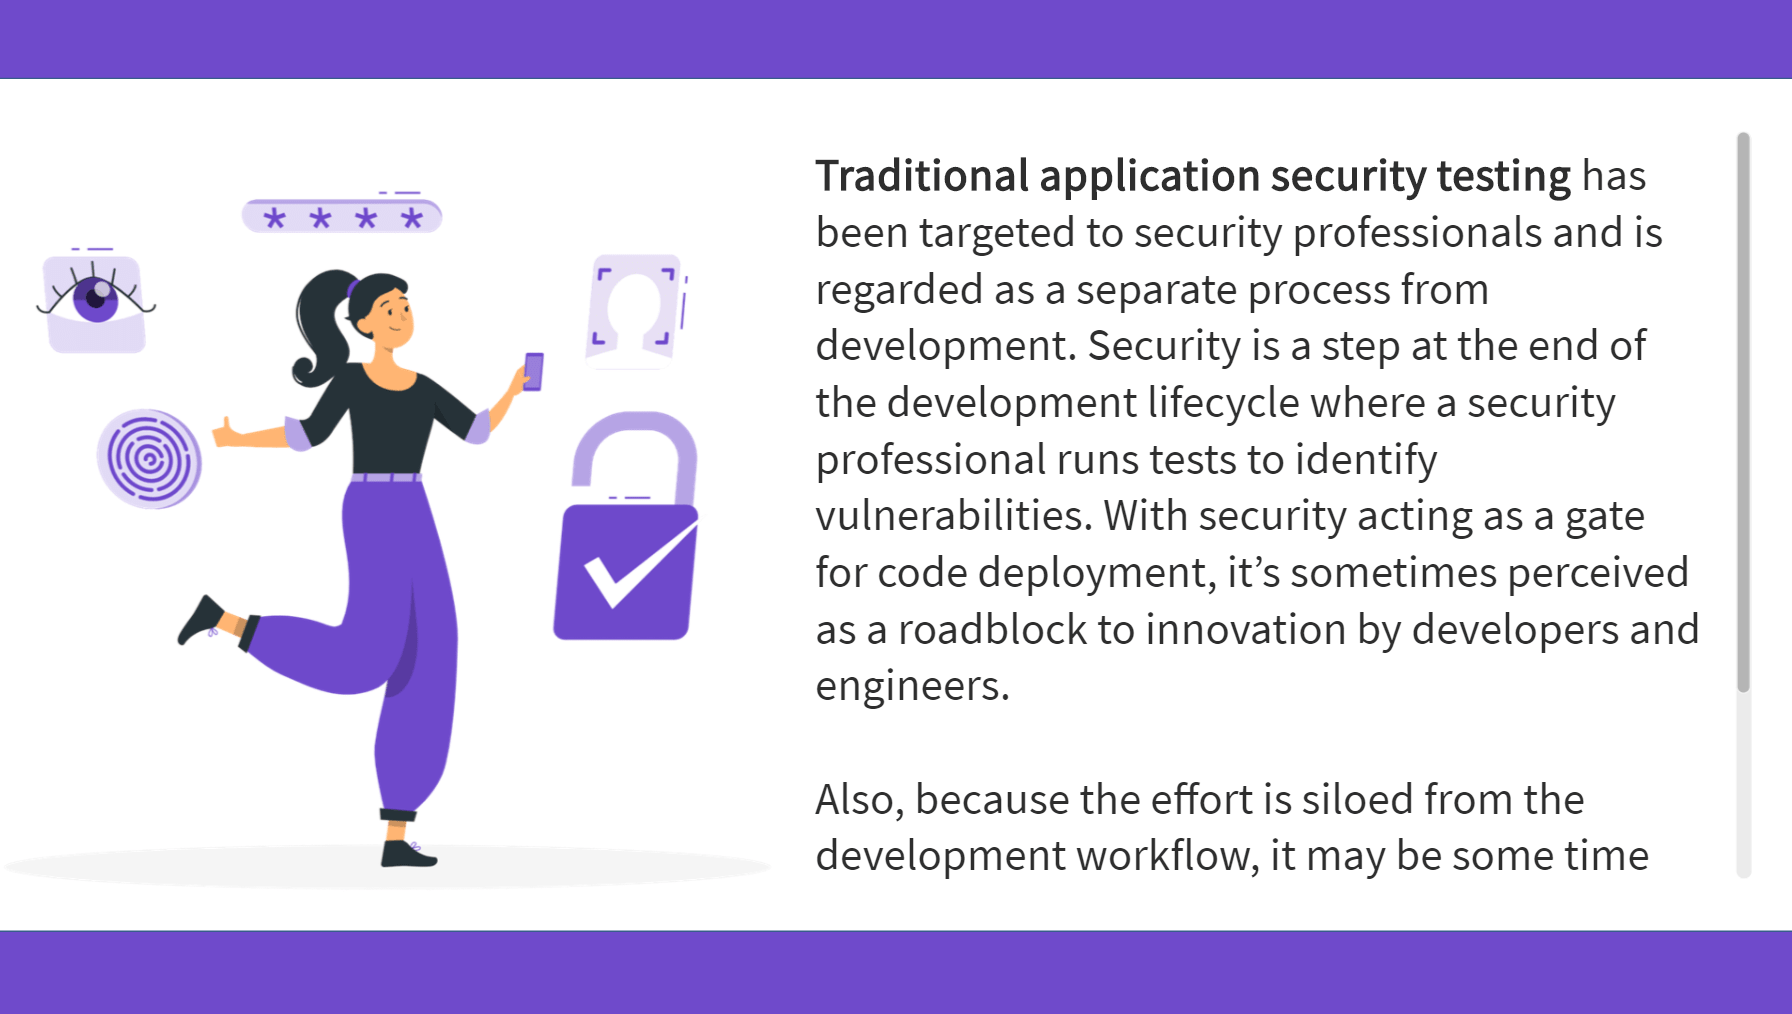 GitLab application security testing content from eLearning example